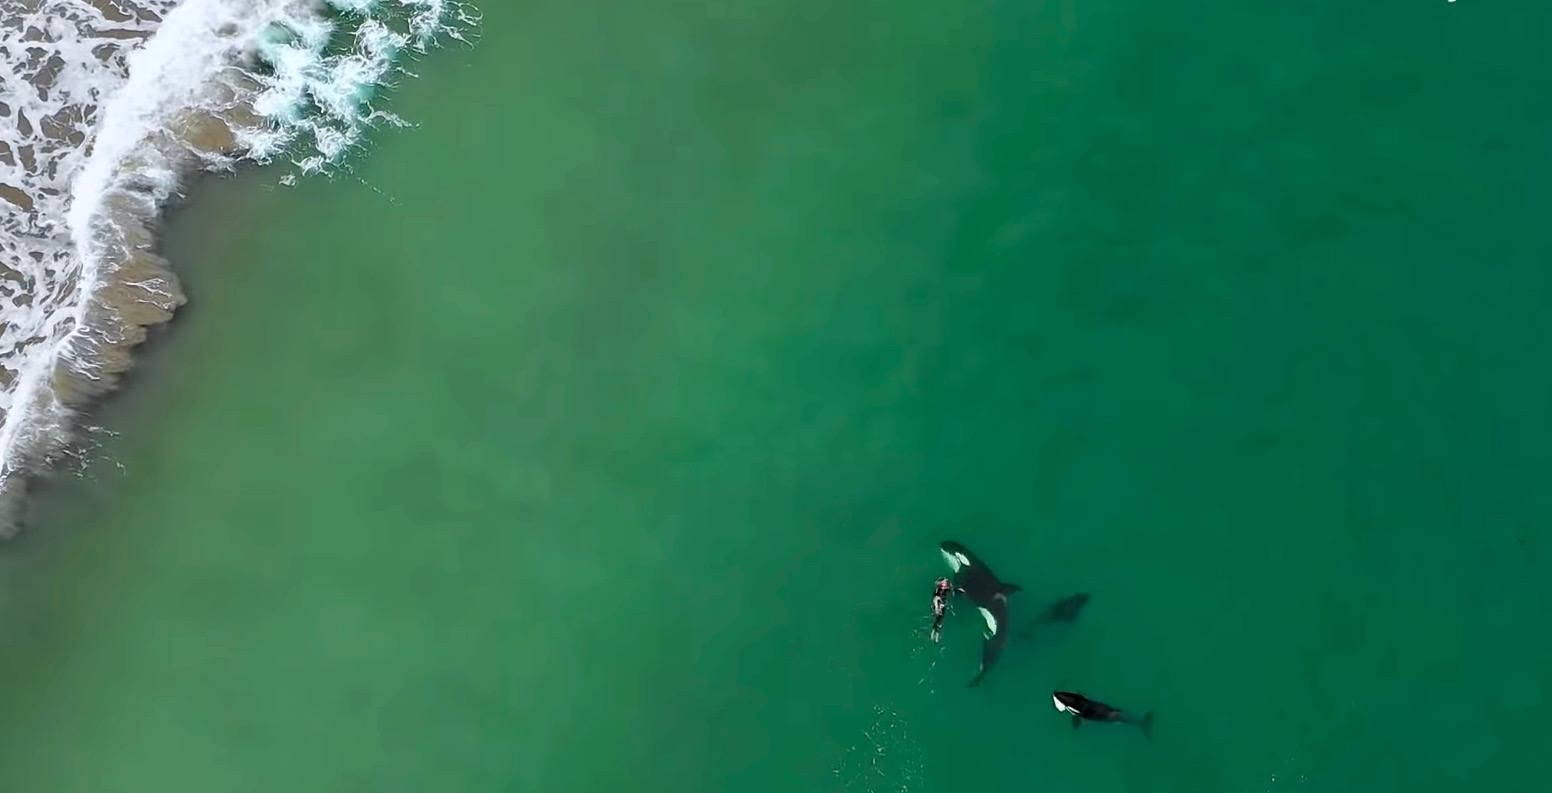 Incredible footage captures family of orcas joining woman for playful swim (VIDEO)